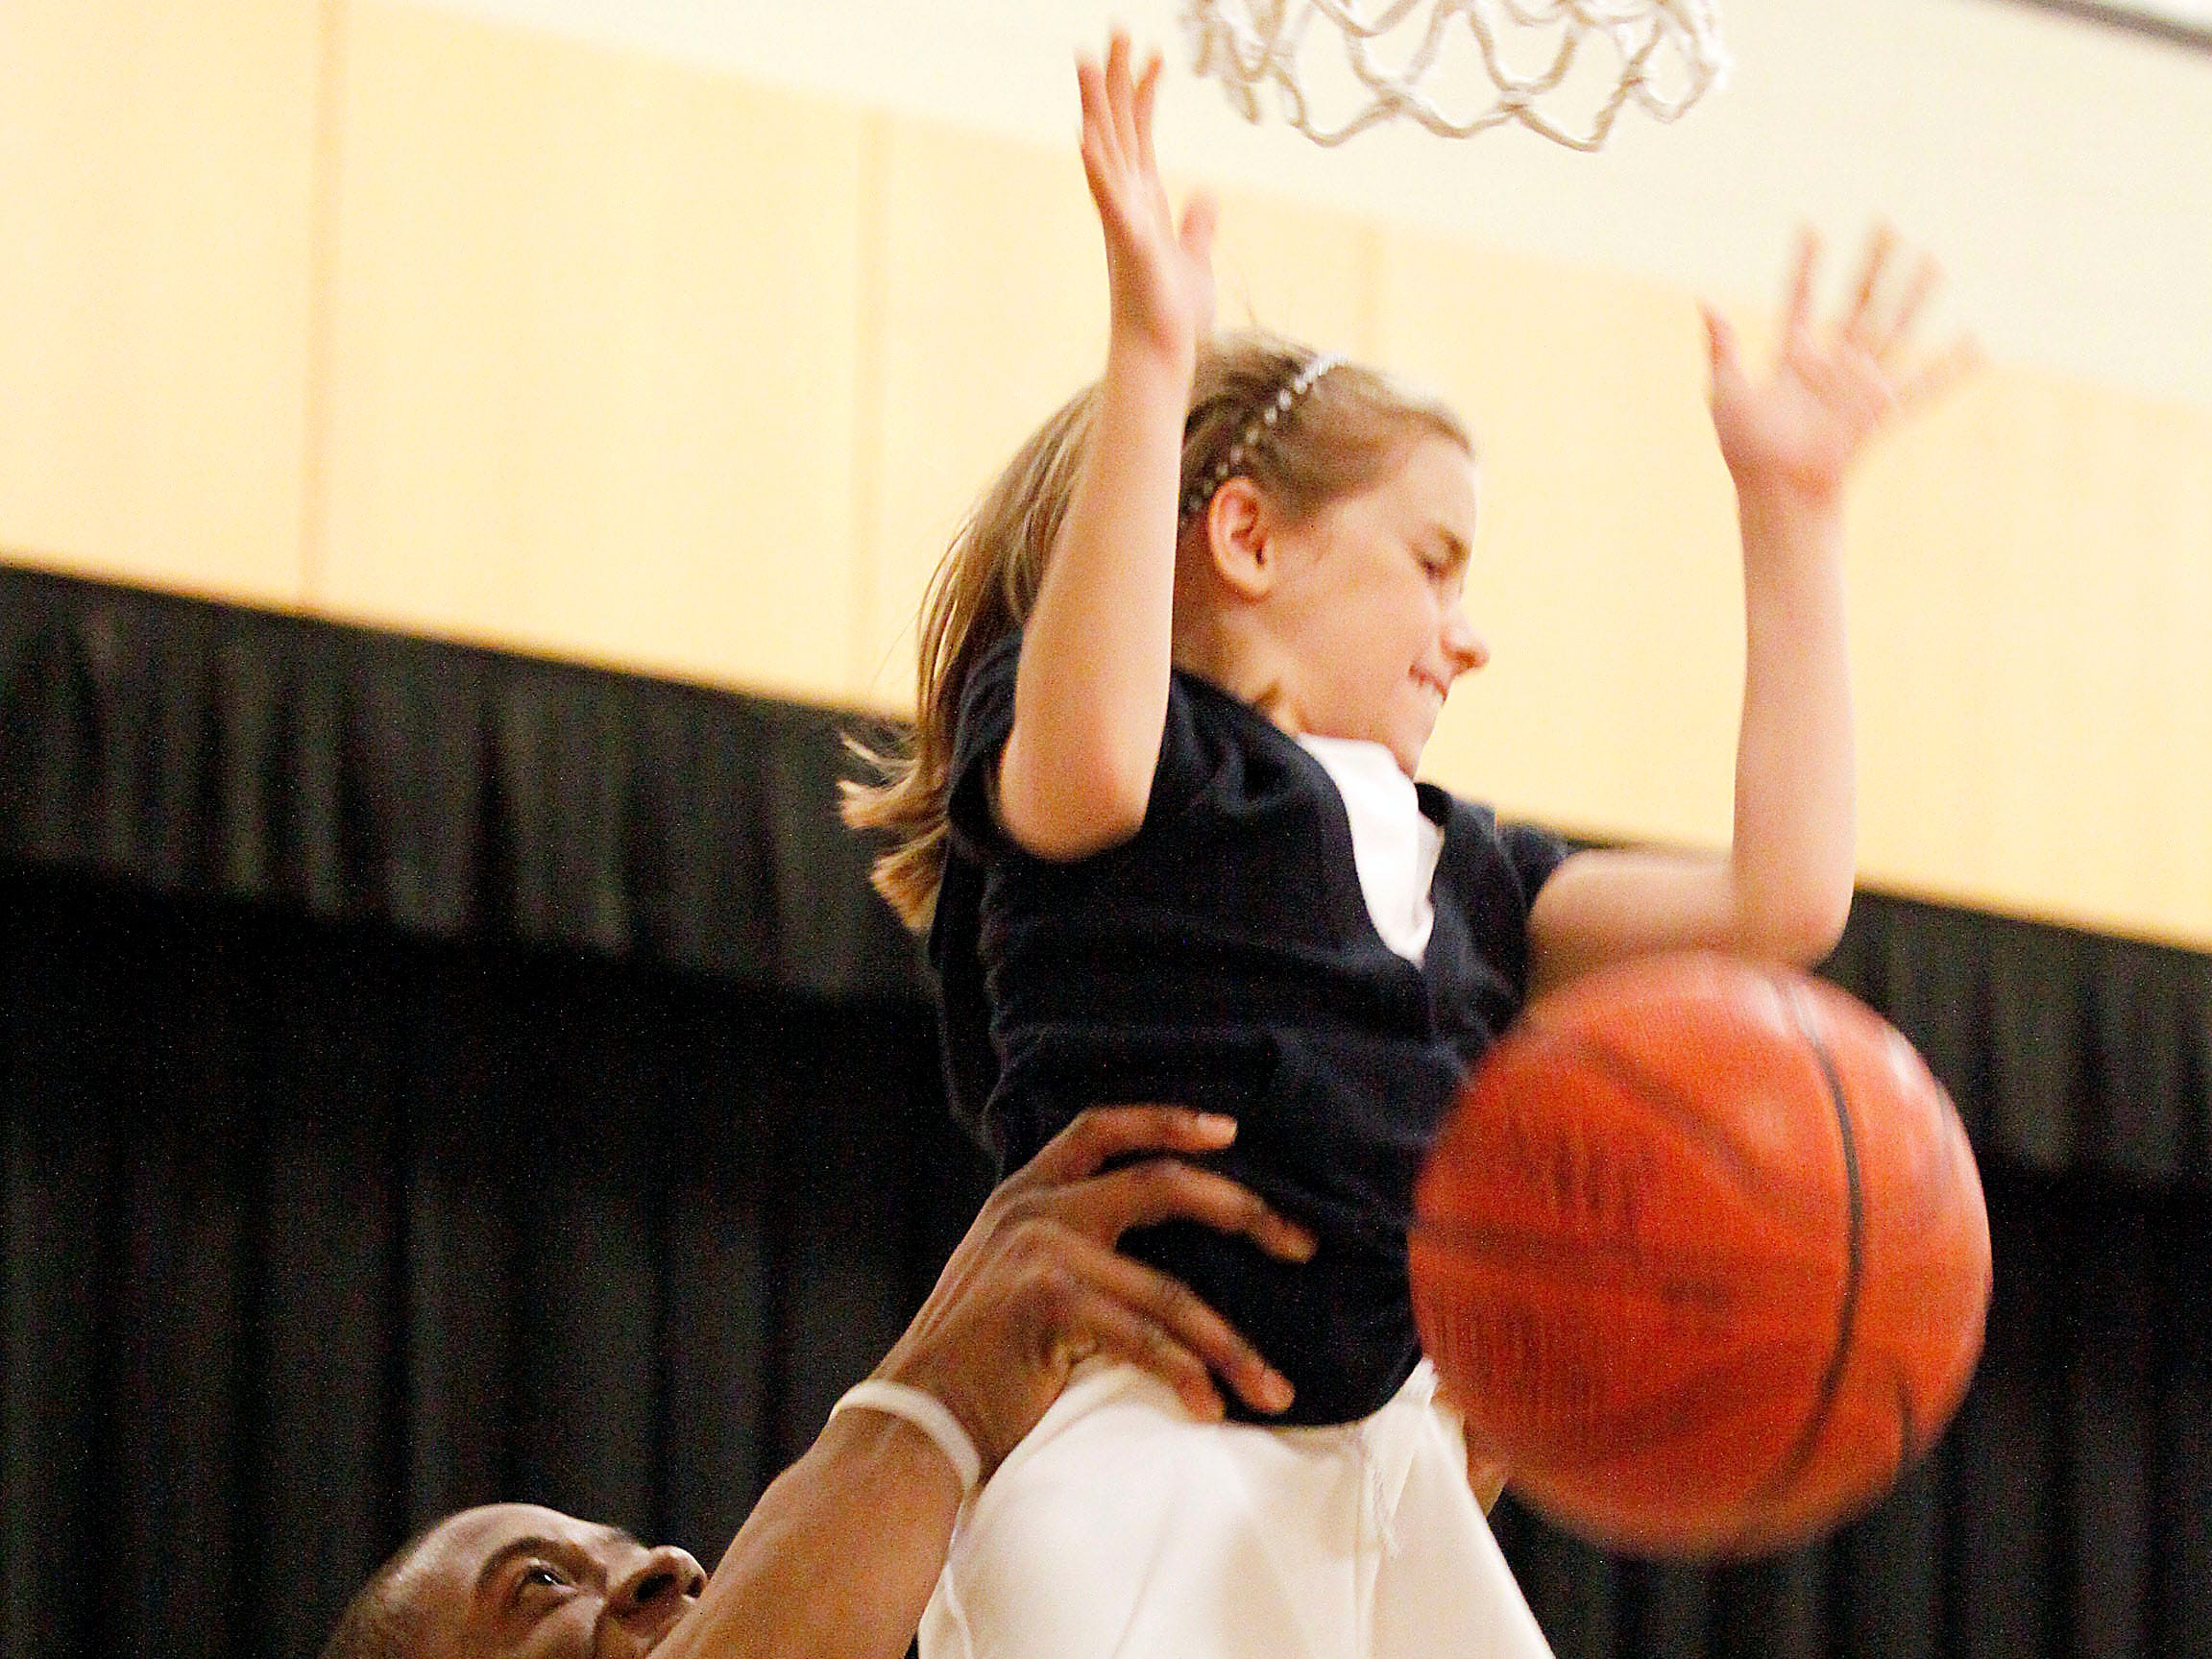 St. Jerome third-grader Anna Judkins an assist for her shot from Marquette's Dwight Burke on May 19, 2009. Burke and teammate Wes Matthews were at the Oconomowoc school for its athletic banquet.